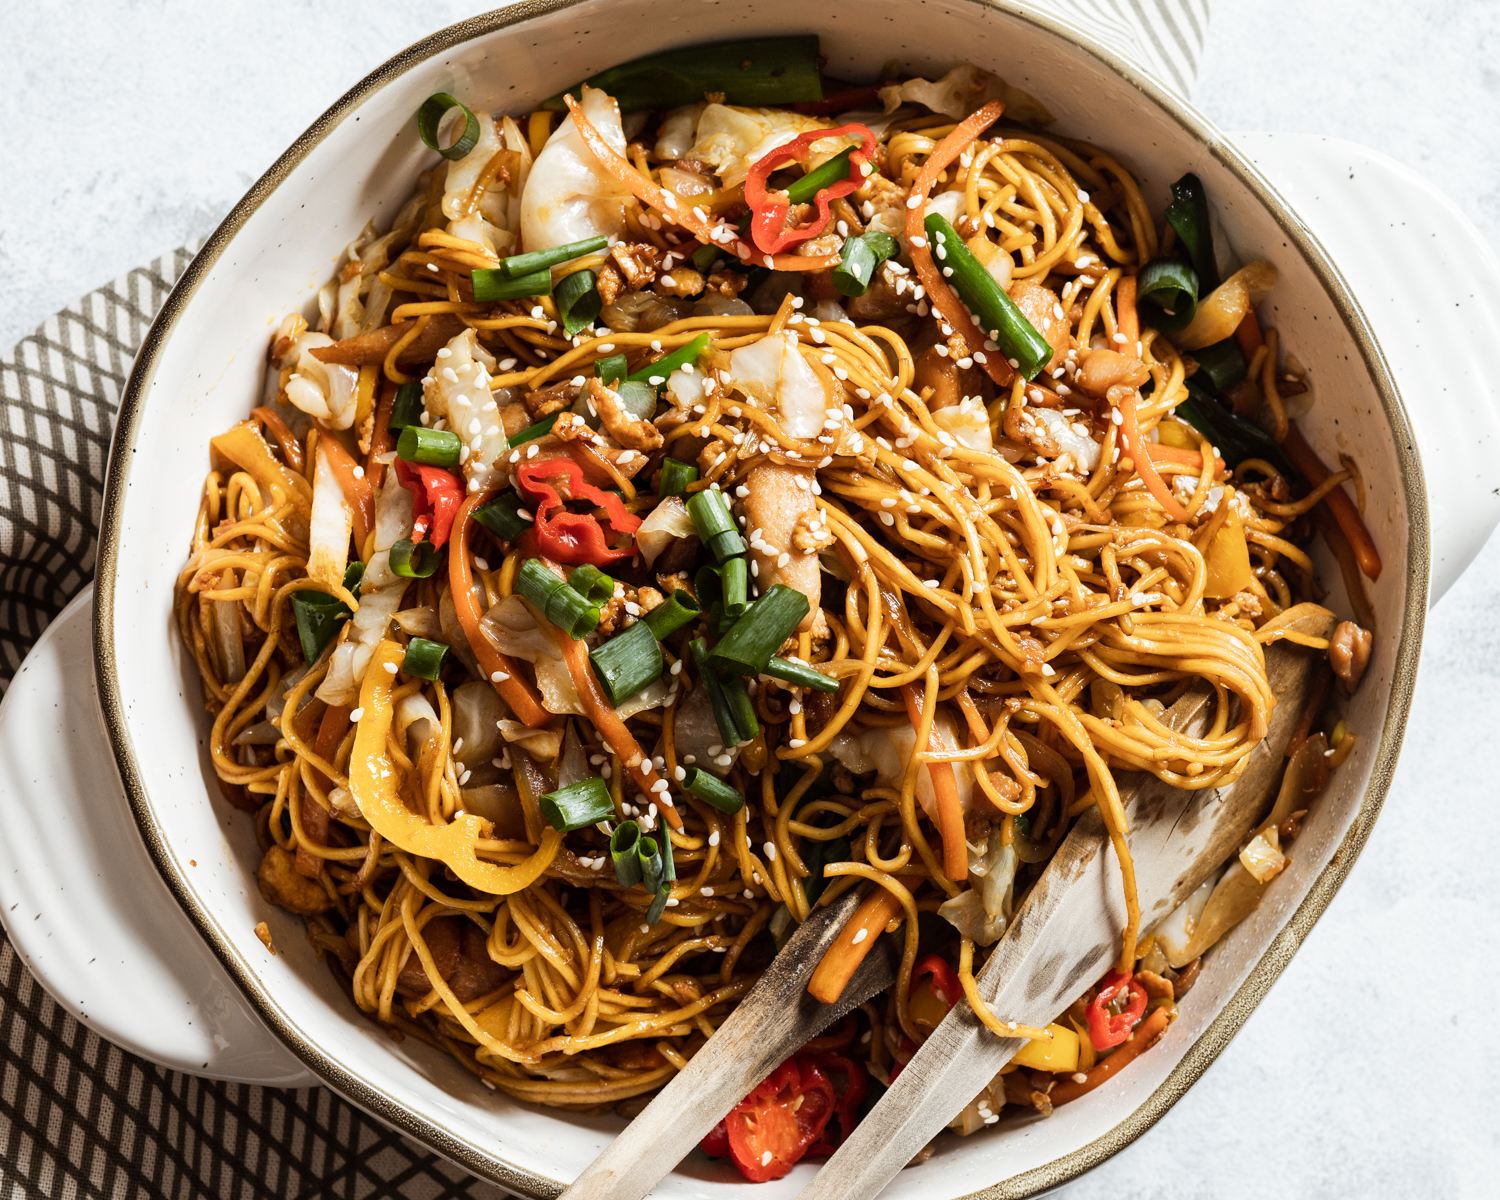 Chicken Chow Mein (aka Chinese Fried Noodles)